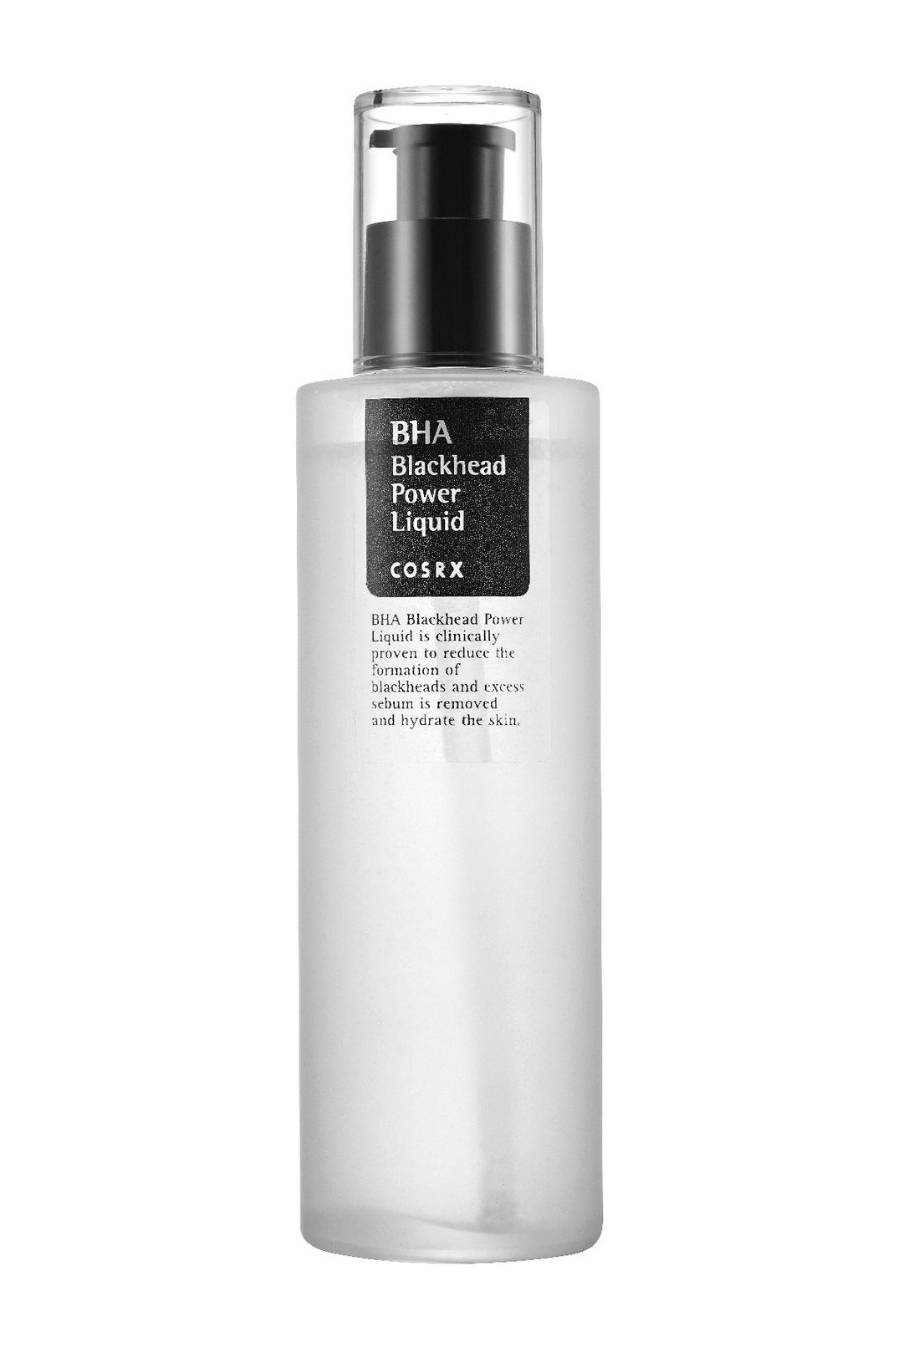 BHA Blackhead Power Liquid de COSRX